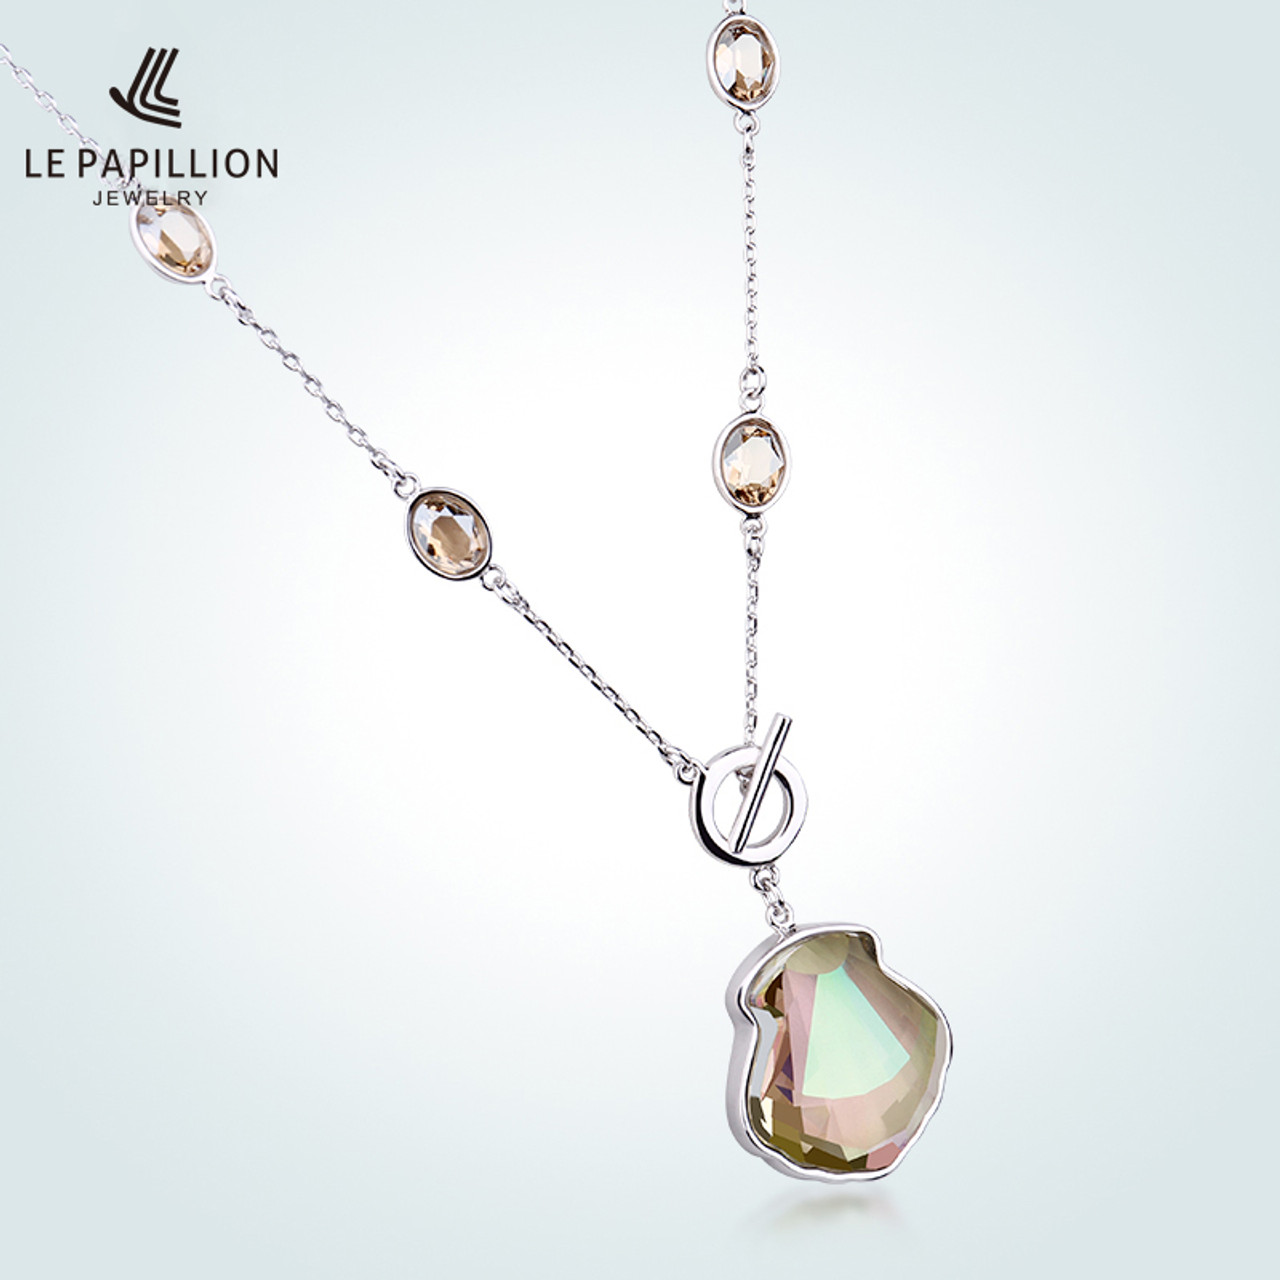 collection pendant actual tenousa fine necklace small products jewelry diamond